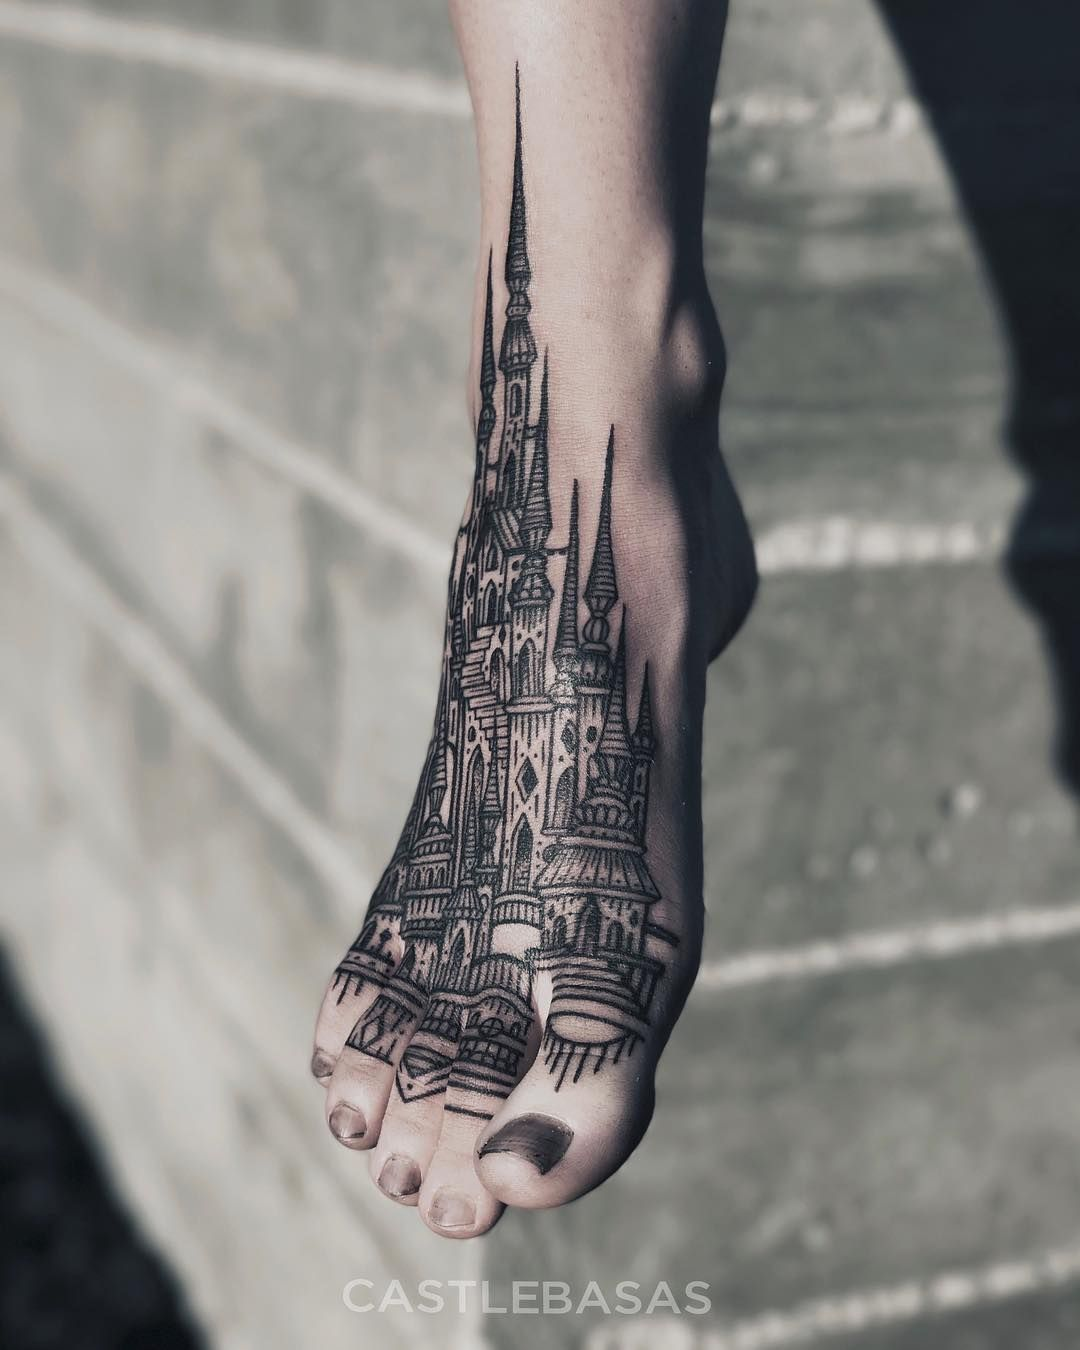 a469356843a0b Leading Tattoo Magazine & Database, Featuring best tattoo Designs & Ideas  from around the world. At TattooViral we connects the worlds best tattoo  artists ...